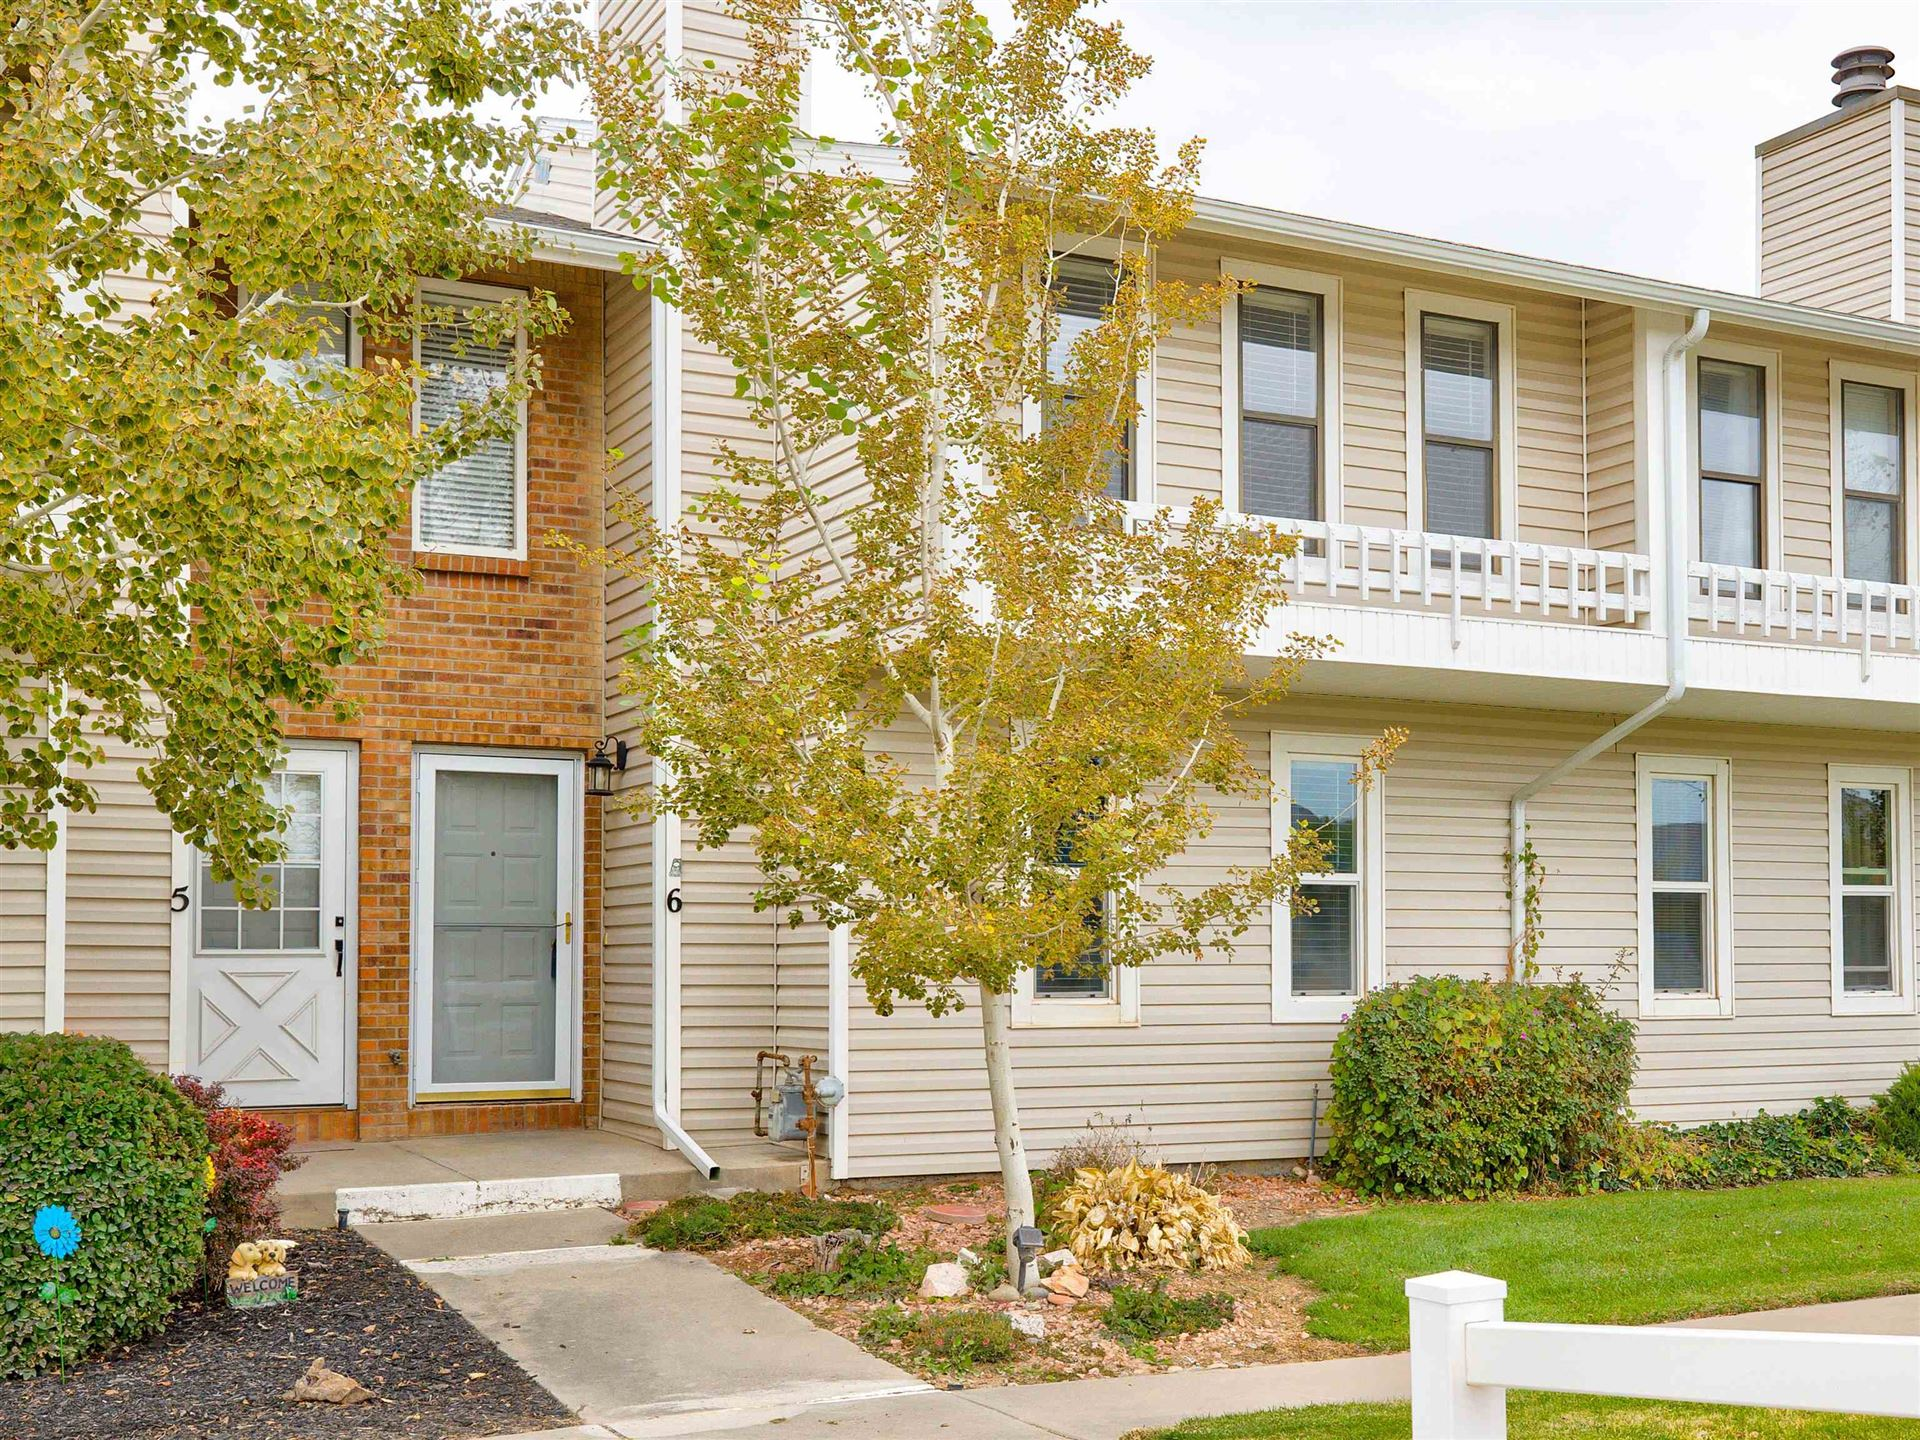 Photo of 515 29 1/2 Road #6, Grand Junction, CO 81504 (MLS # 20215728)